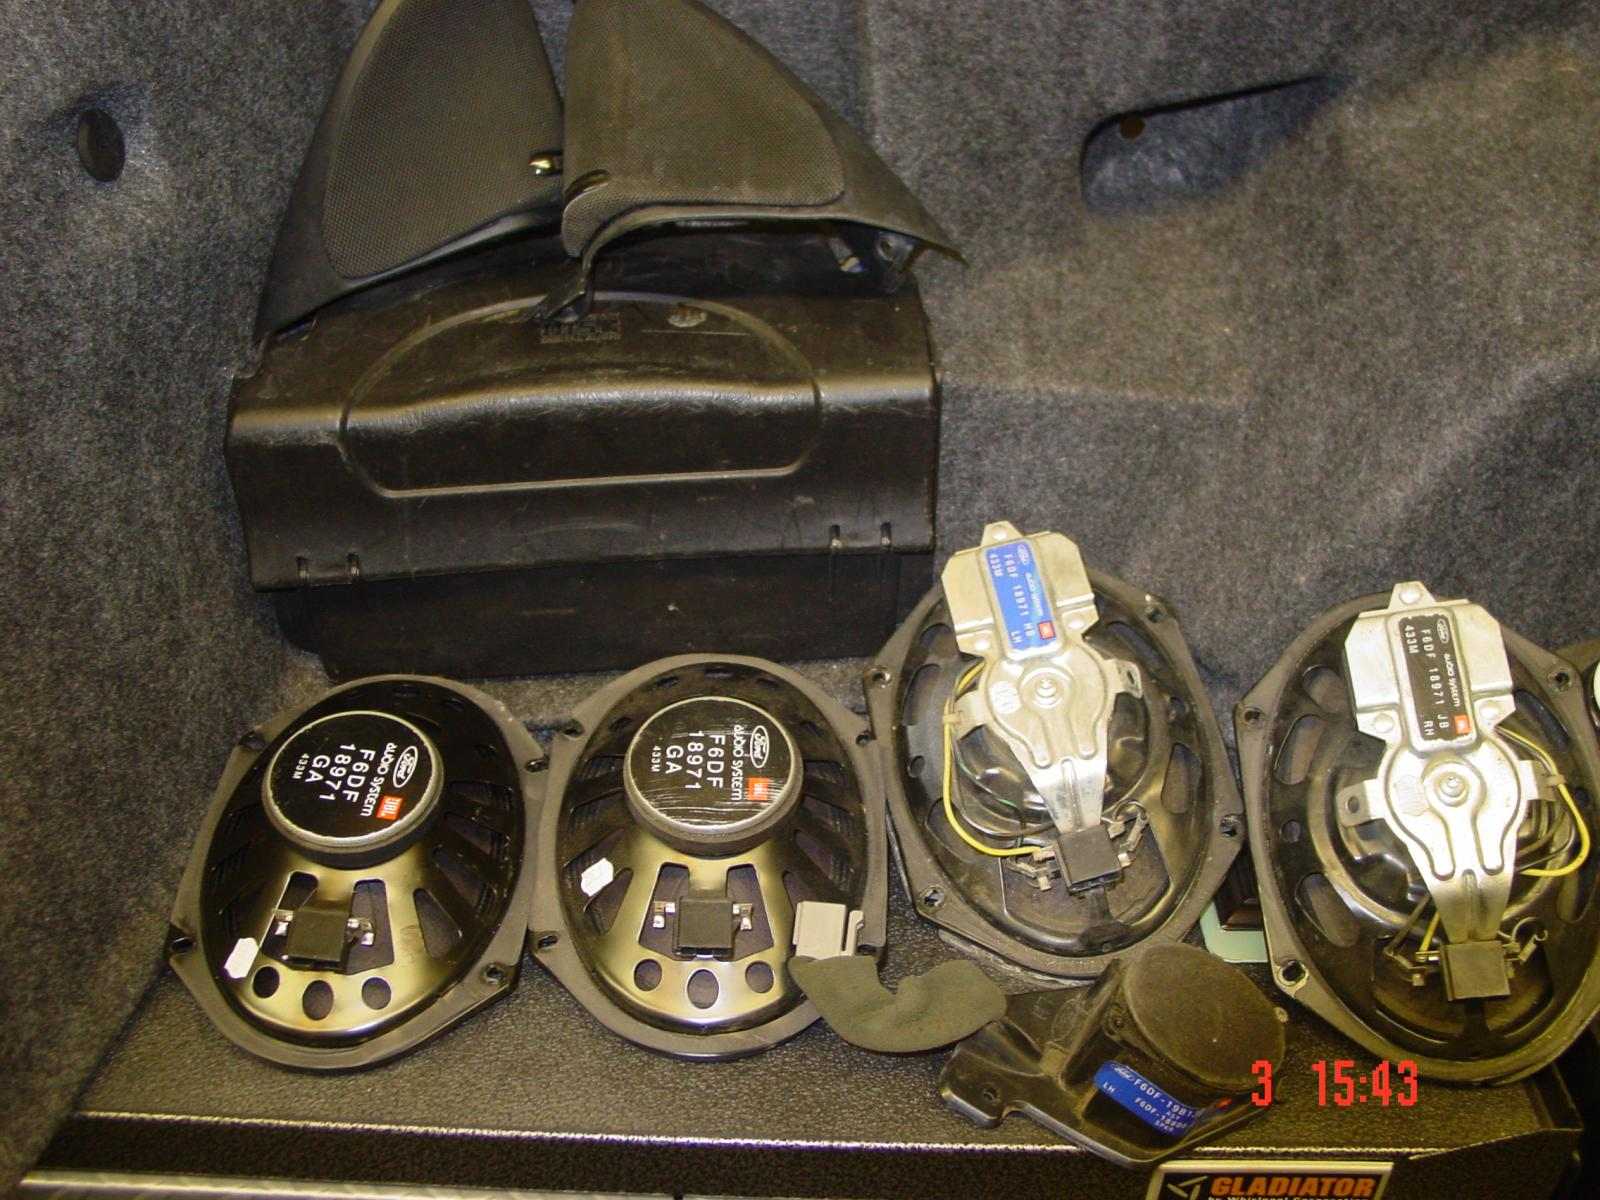 Mach Stereo Speakers Taurus Car Club Of America Ford Forum 2002 Mustang Sound System Dsc02672